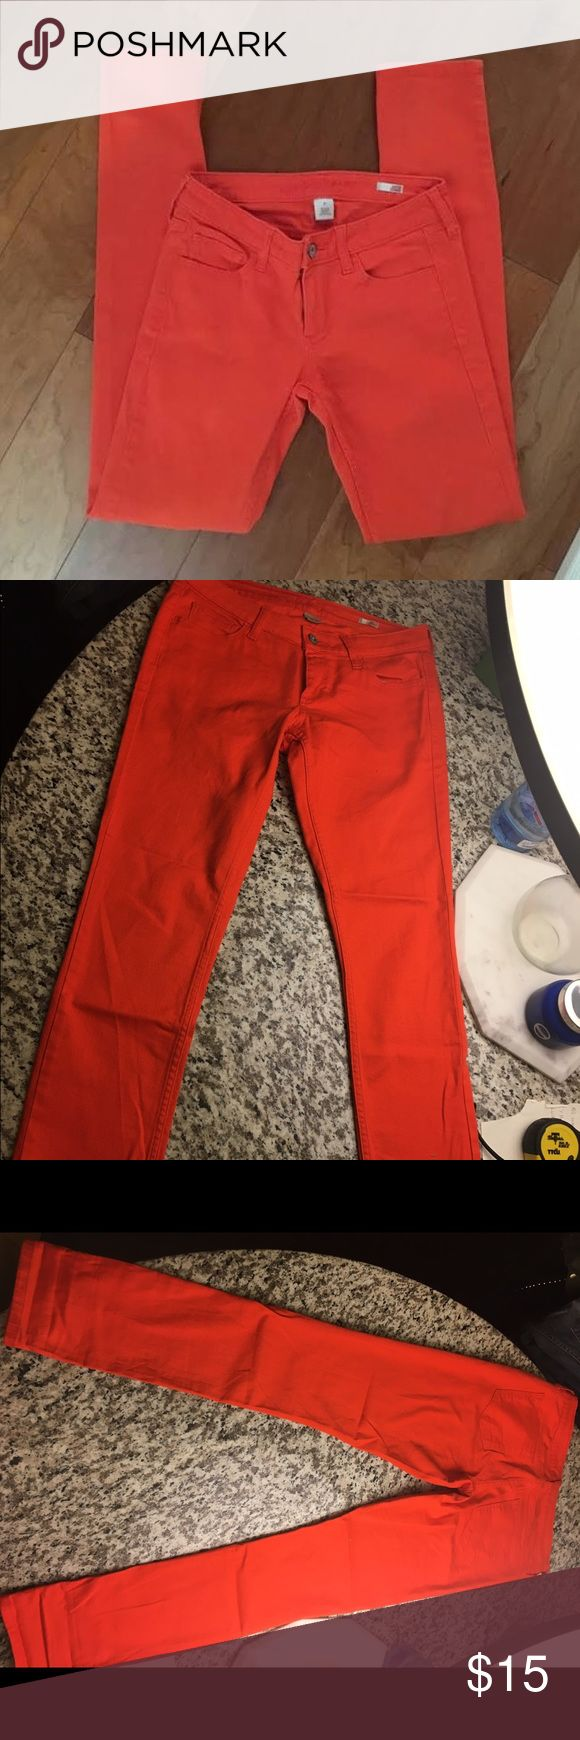 """Arizona 'Super Skinny' in ORANGE Sz 9 True ORANGE color skinny jeans. Sz 9; 31"""" inseam; 7"""" cuff diameter. Run true to size.. not small like typical juniors sizing. These fitnlike a Sz 29/30. These are perfect for game day if your team's color is orange (OkState, Syracuse, Cleveland Browns, etc,) or if you just want a pair a stand out jeans. These have only been washed once and never dried. No fading. Arizona Jean Company Jeans Skinny"""